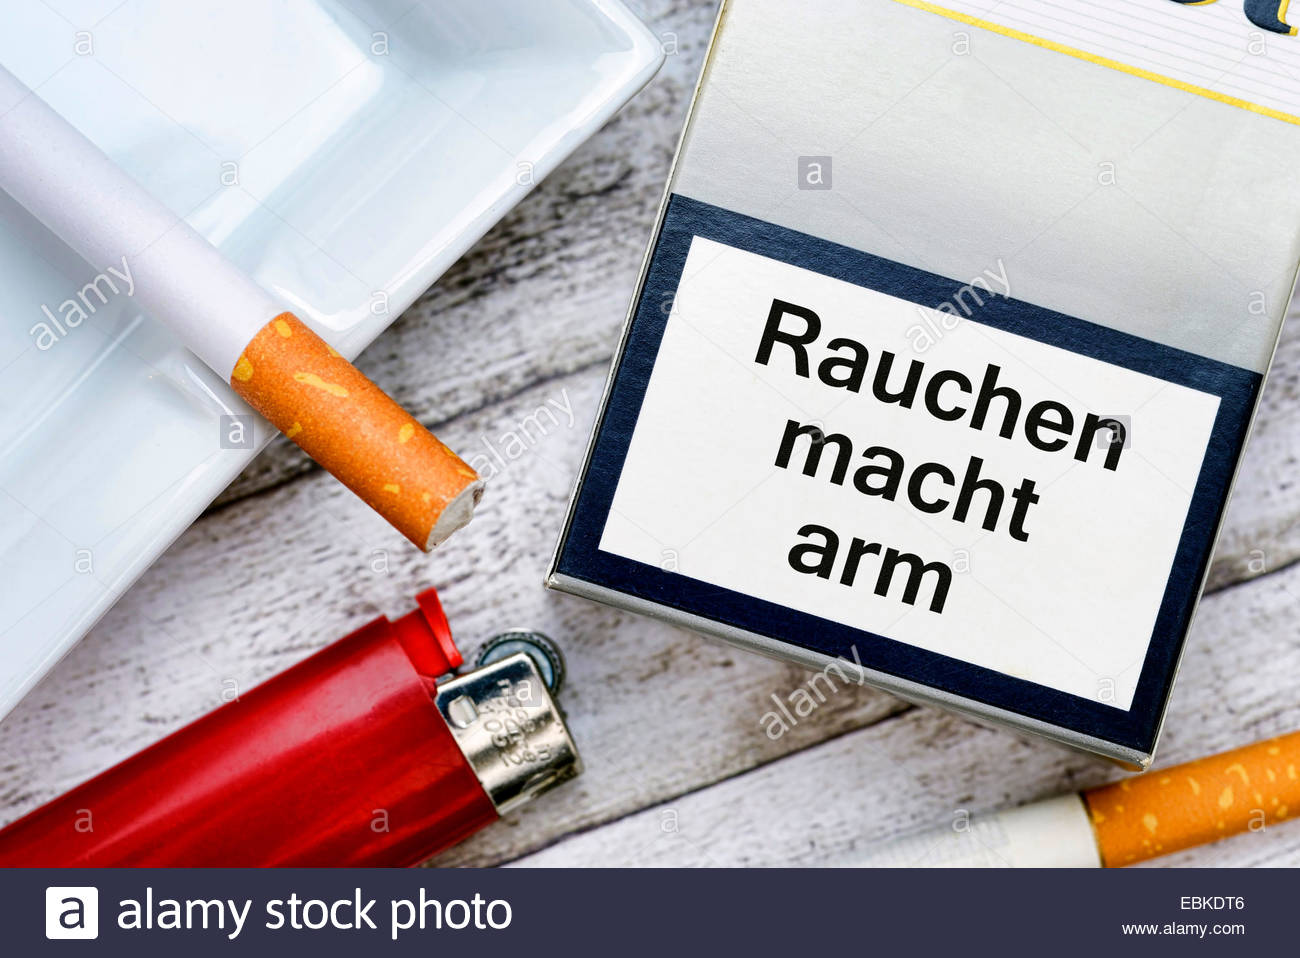 cigarette packet with the inscription 'Rauchen macht arm' ('Smoking makes you poor'), symbol photo - Stock Image